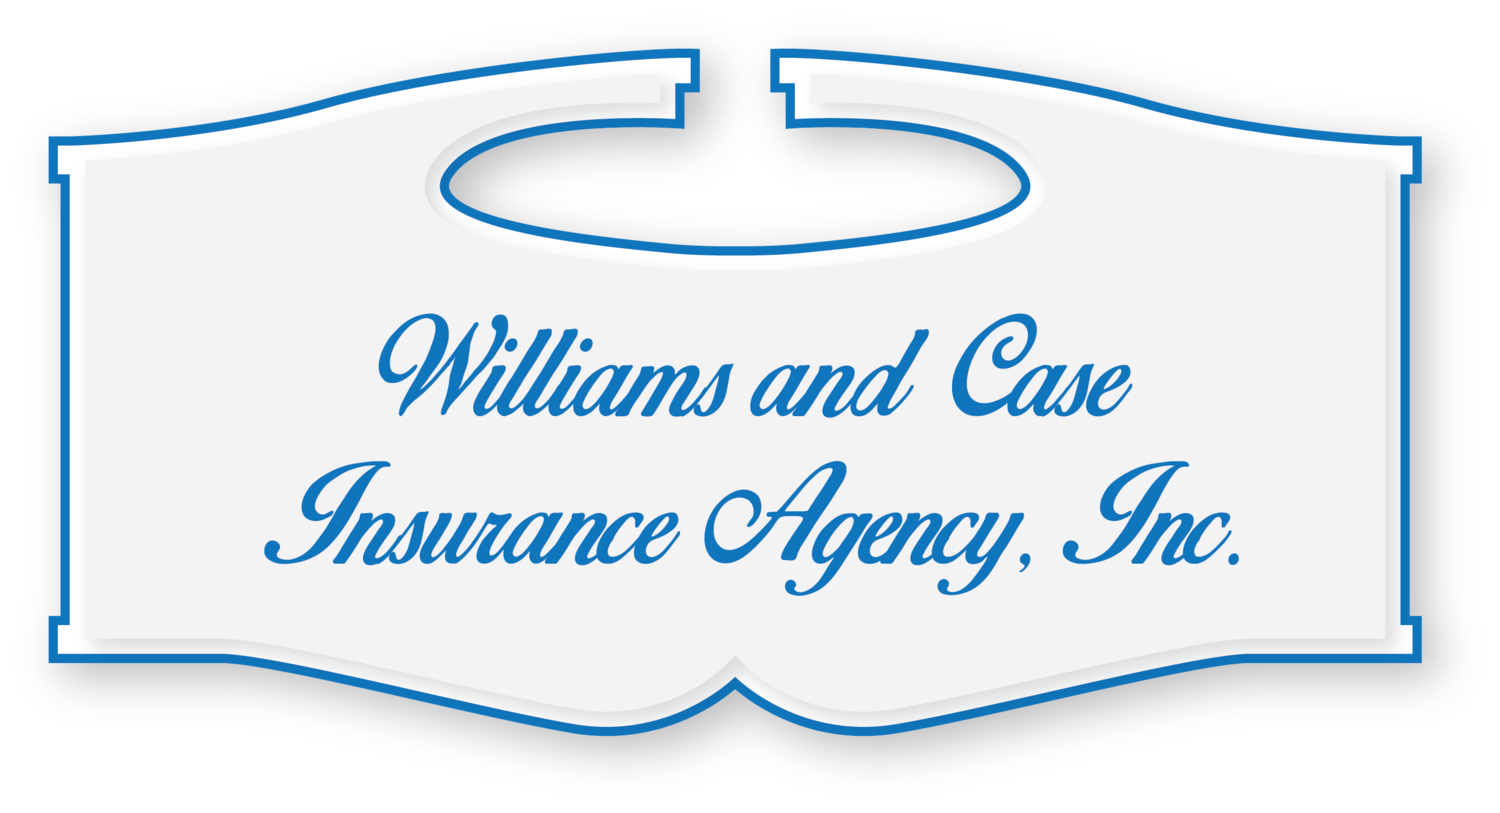 Williams and Case Insurance Agency